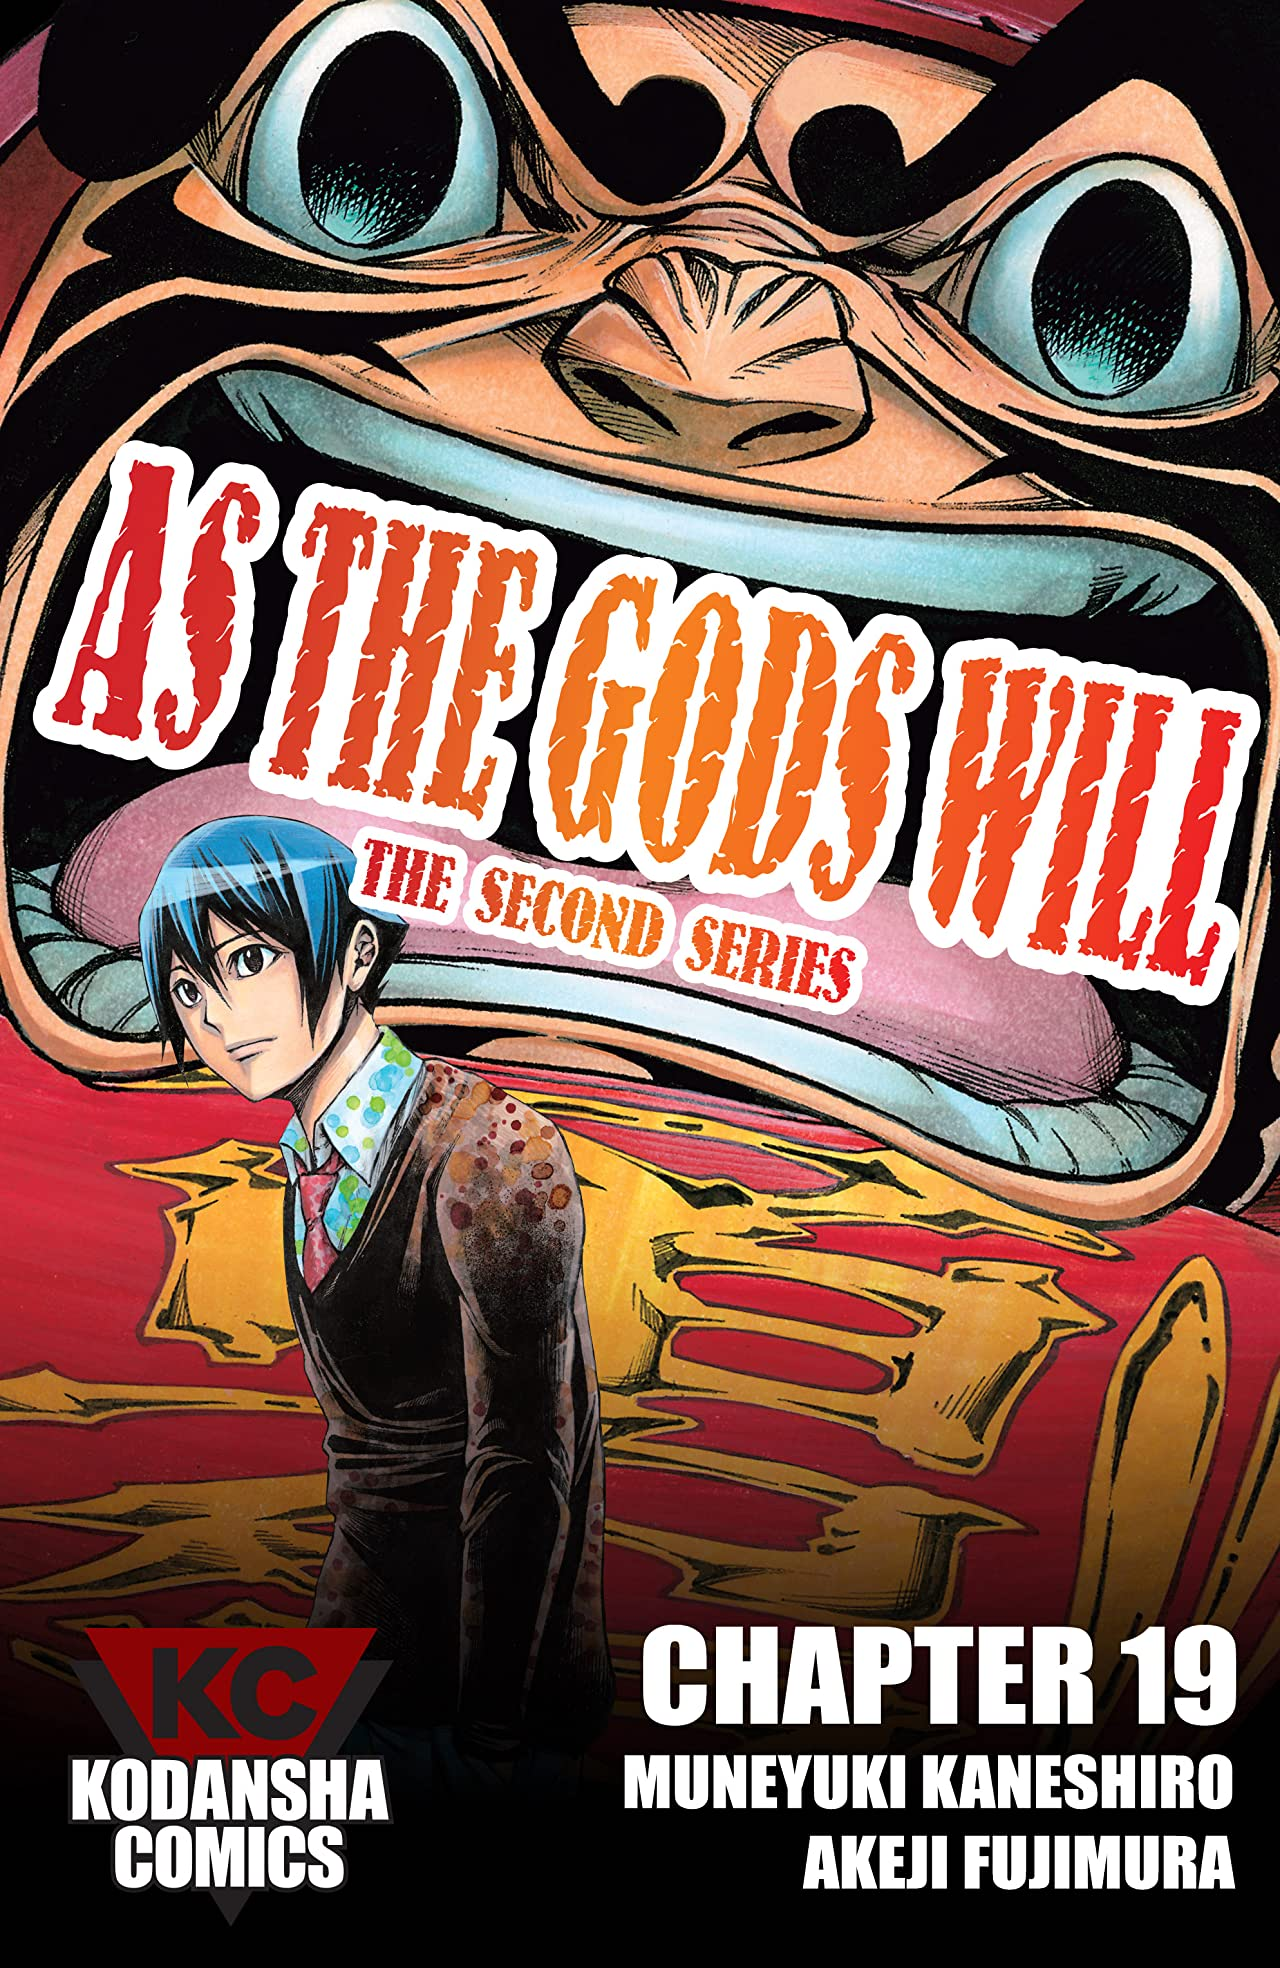 As The Gods Will: The Second Series #19